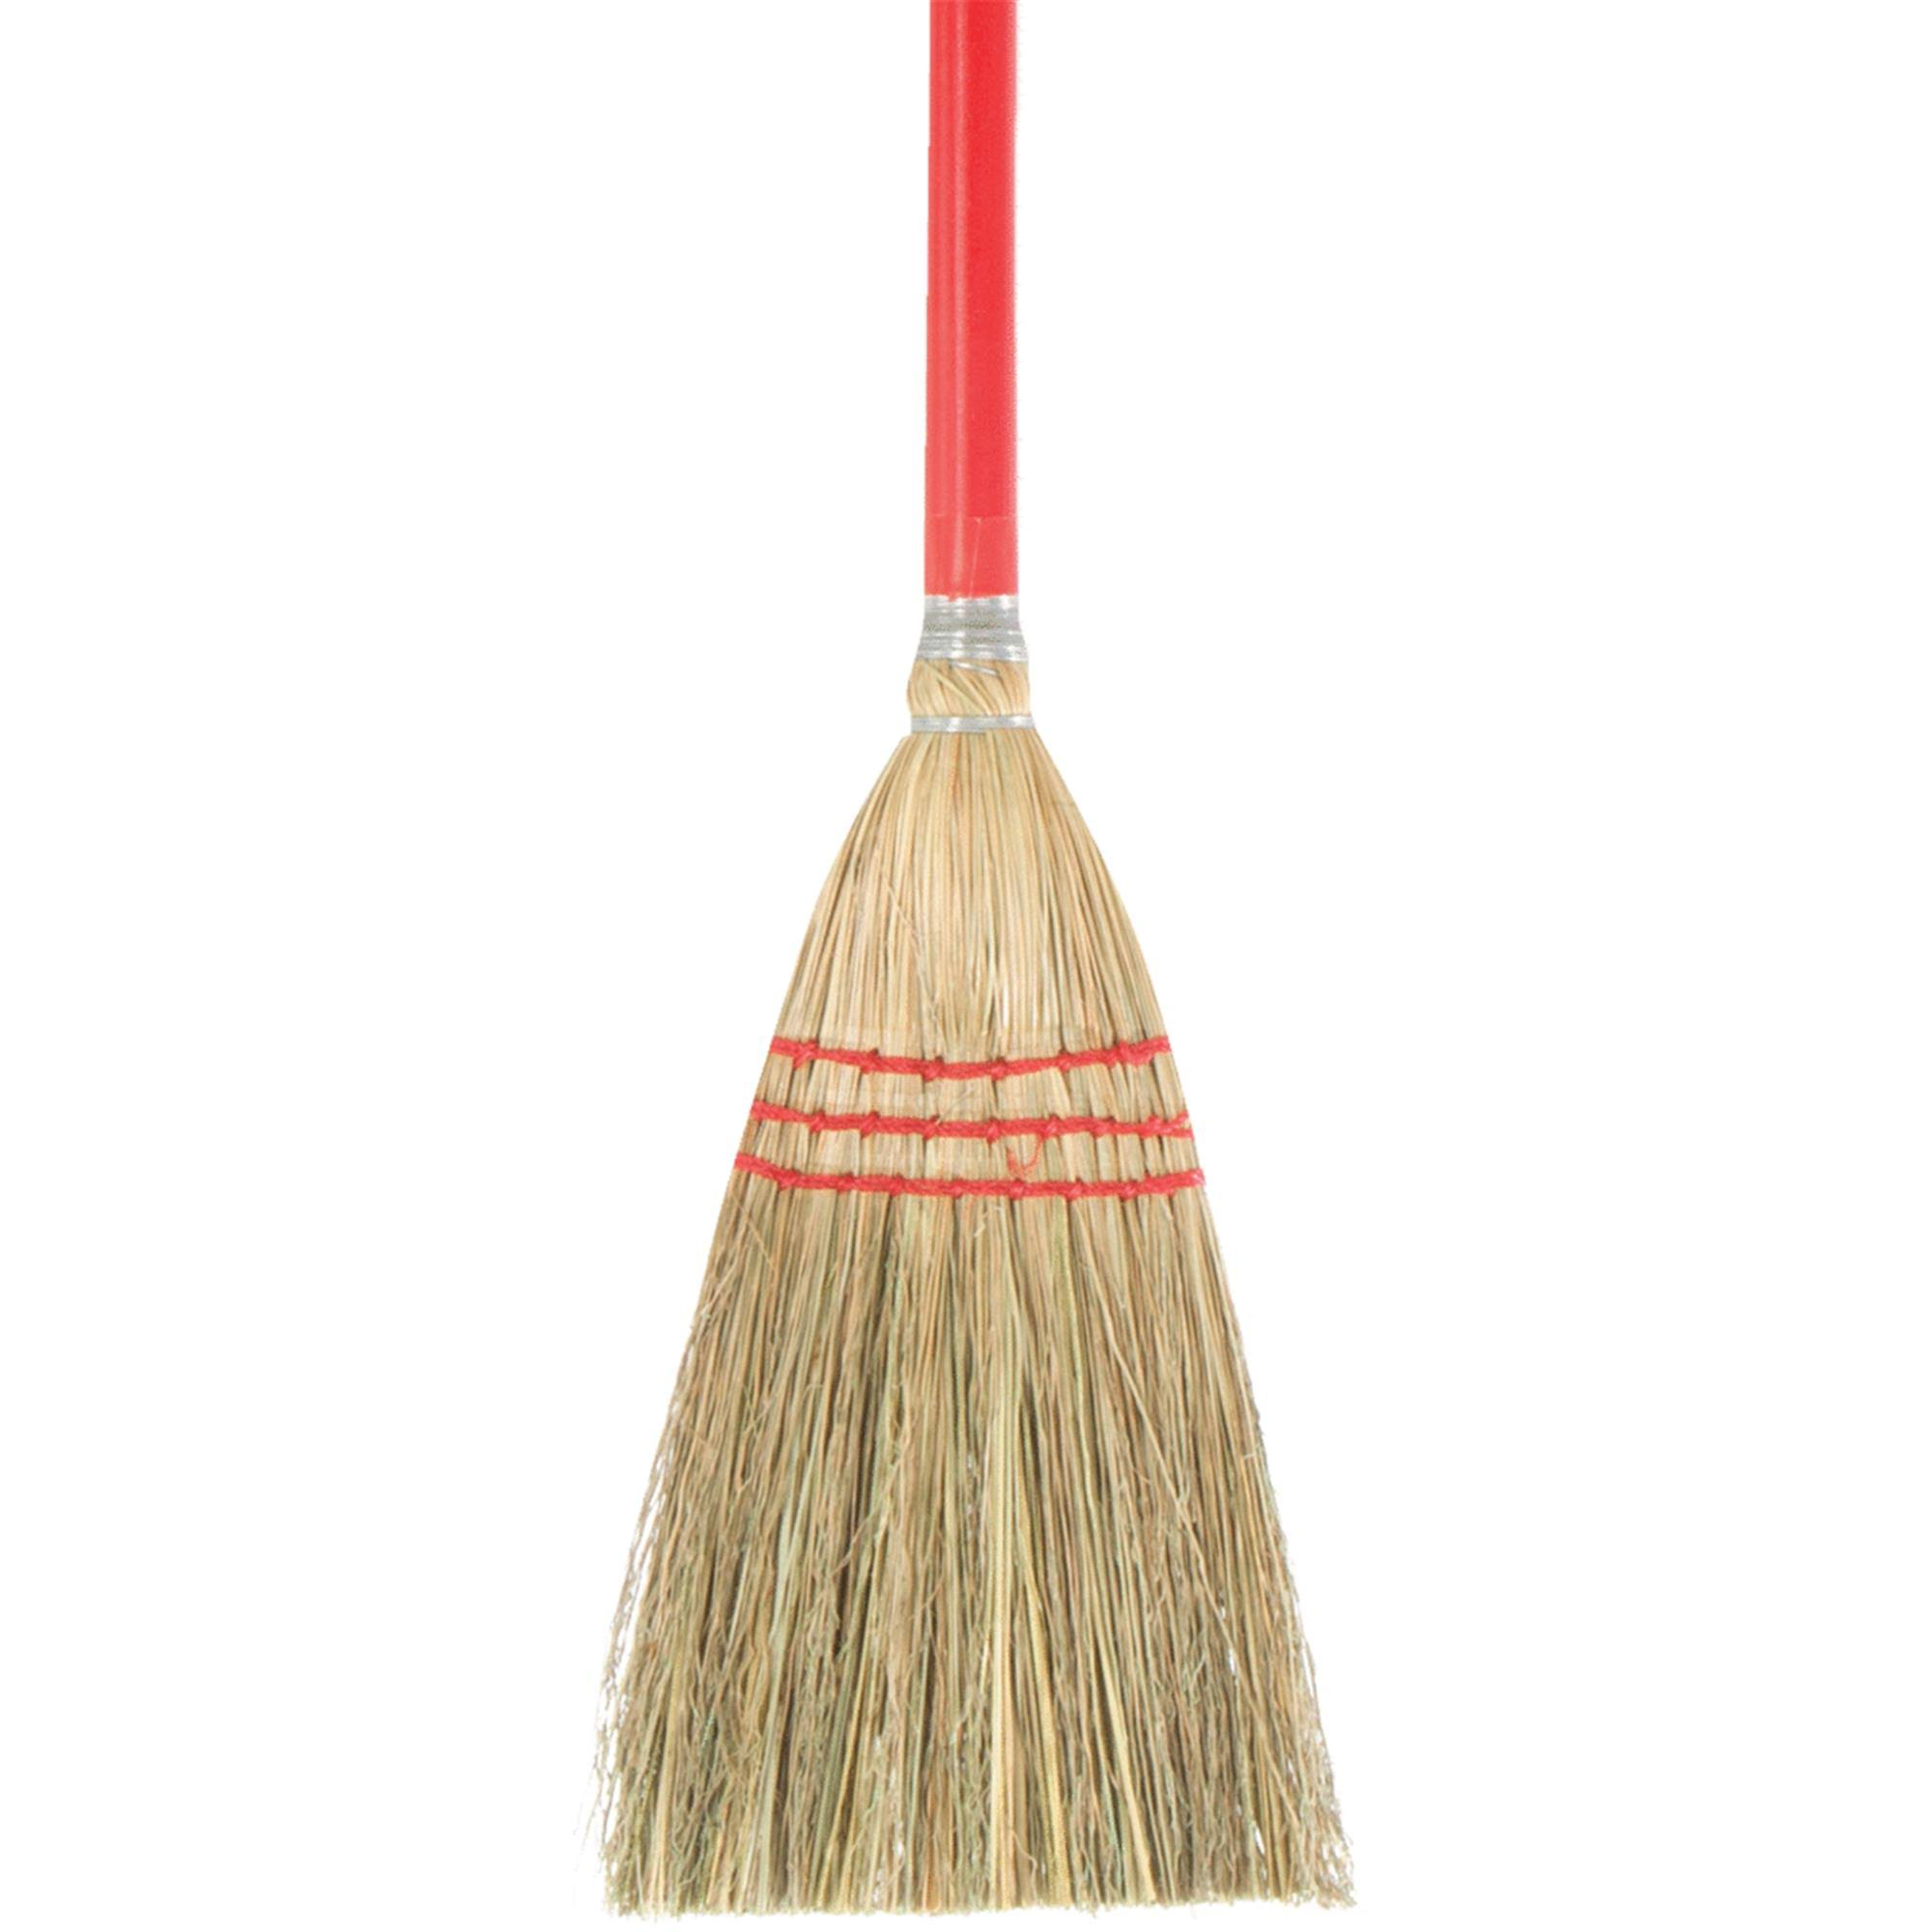 Furgale Lobby Corn Broom - 700gdib